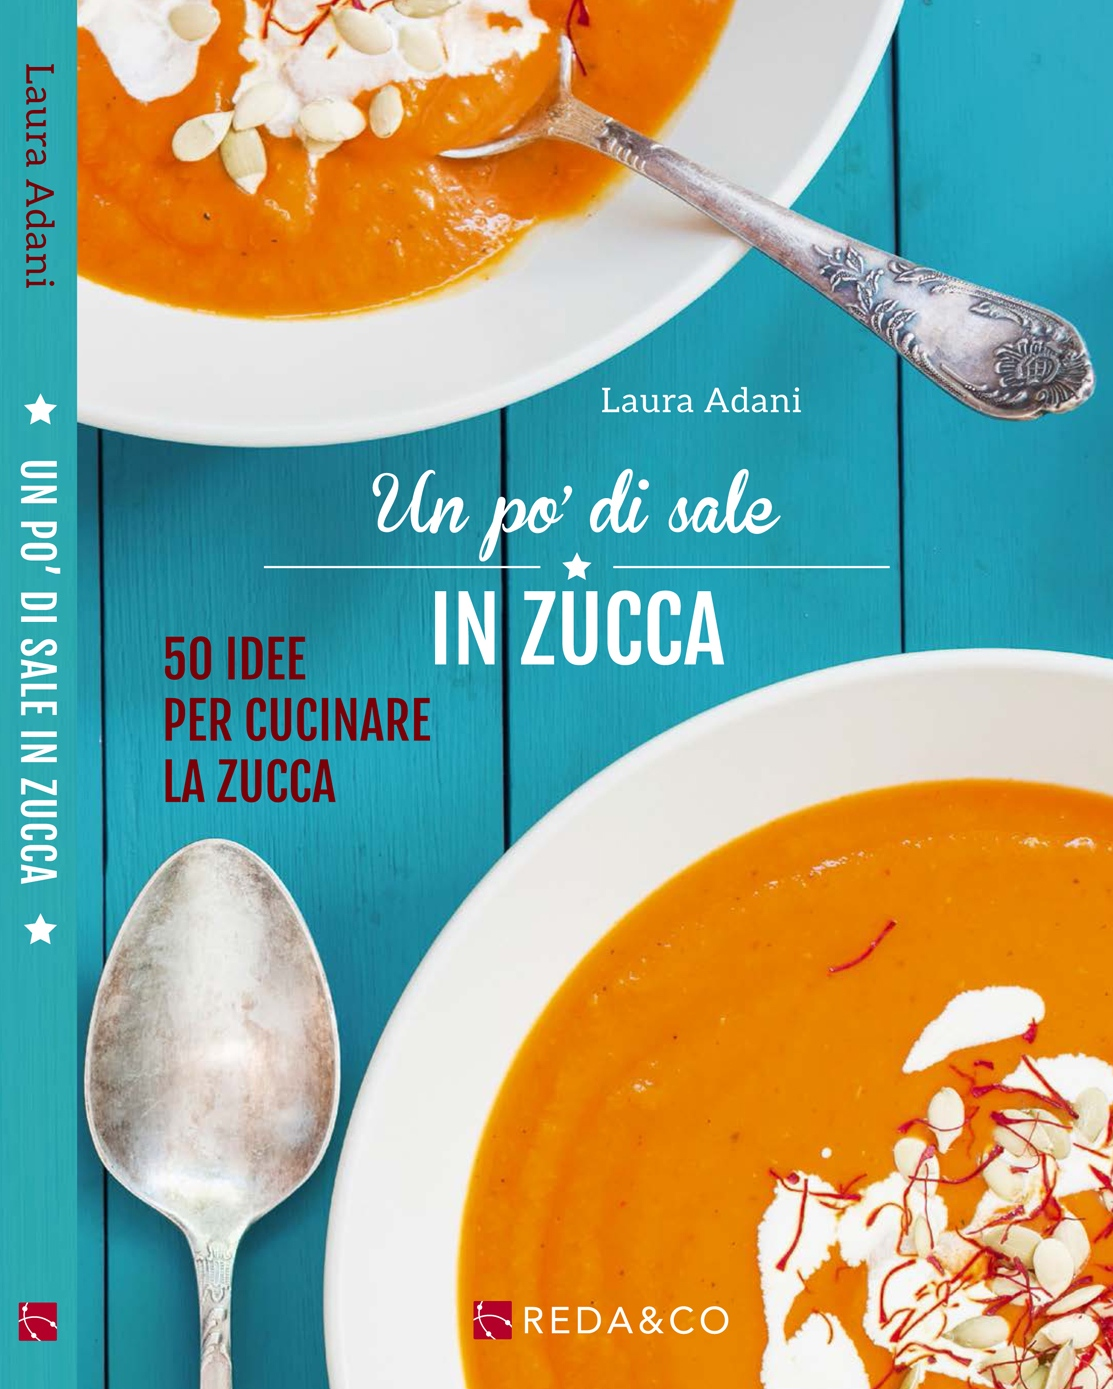 saleinzucca_coverok